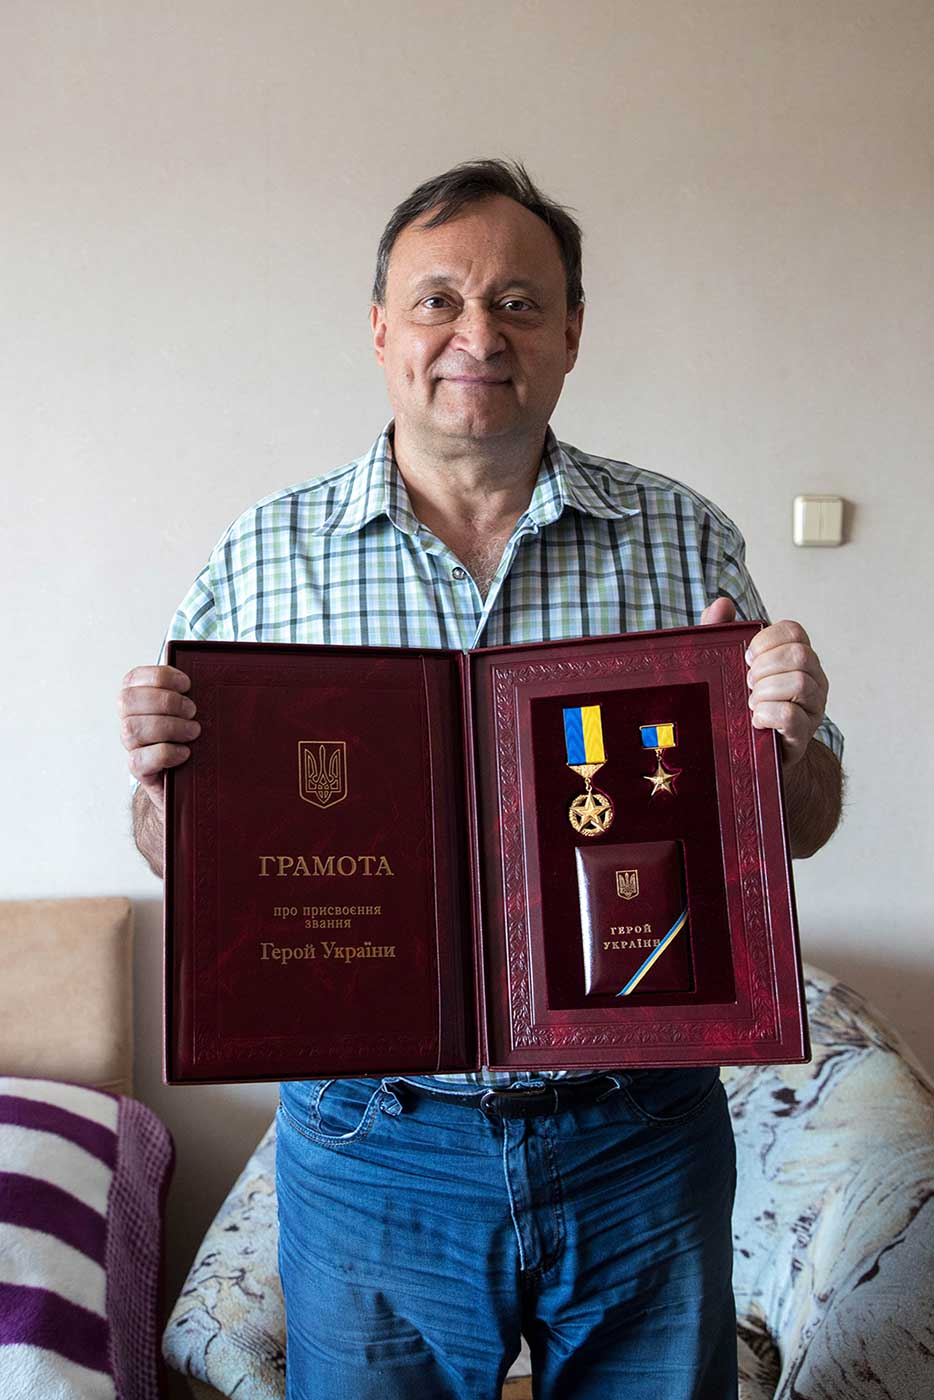 Alexei Ananenko presents the prestigious Hero of Ukraine award, given to him by President Volodymyr Zelenskyy in July 2019. Photograph taken at his home, two months later.